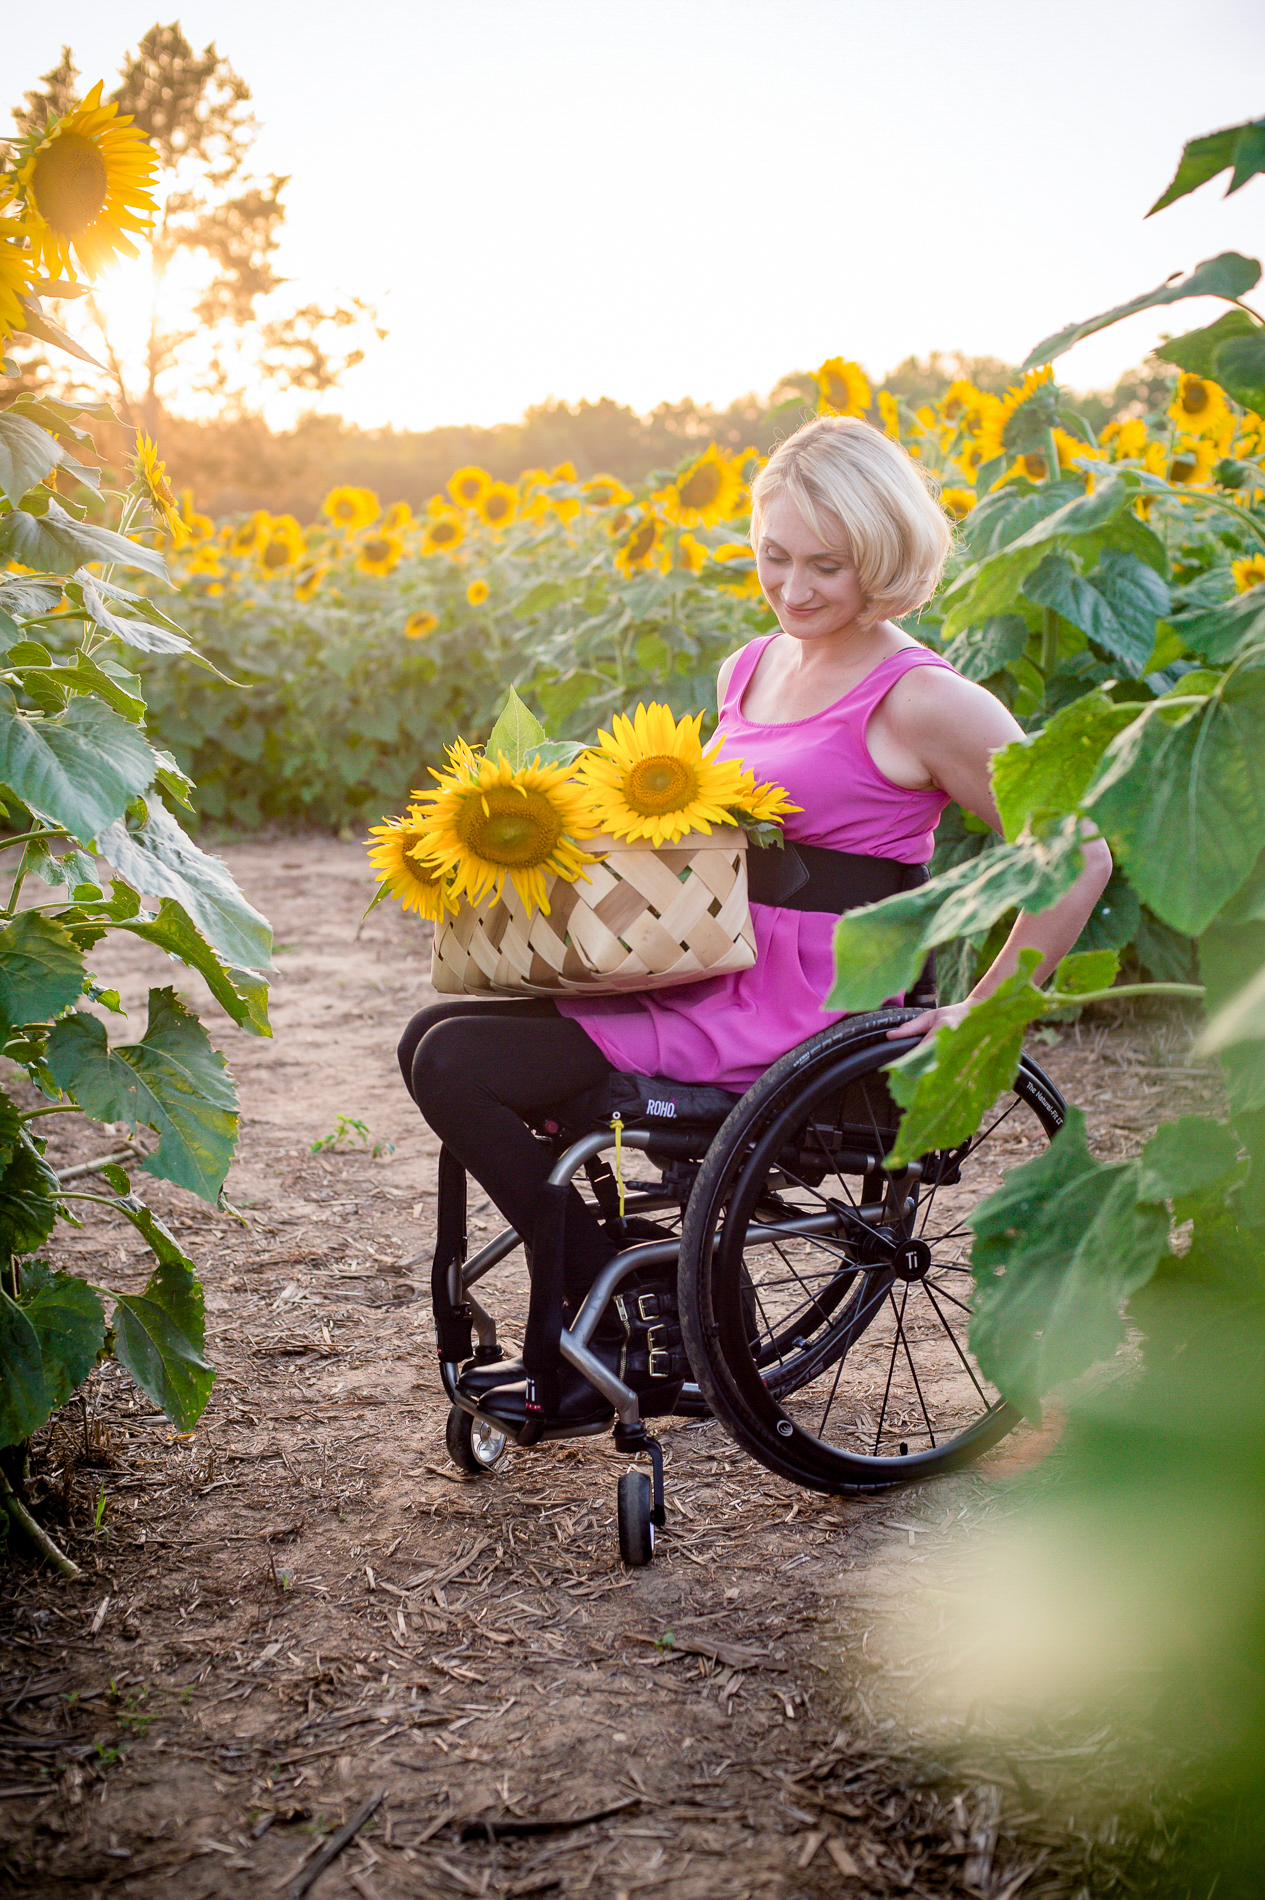 Wheelchair in the Sunflowers